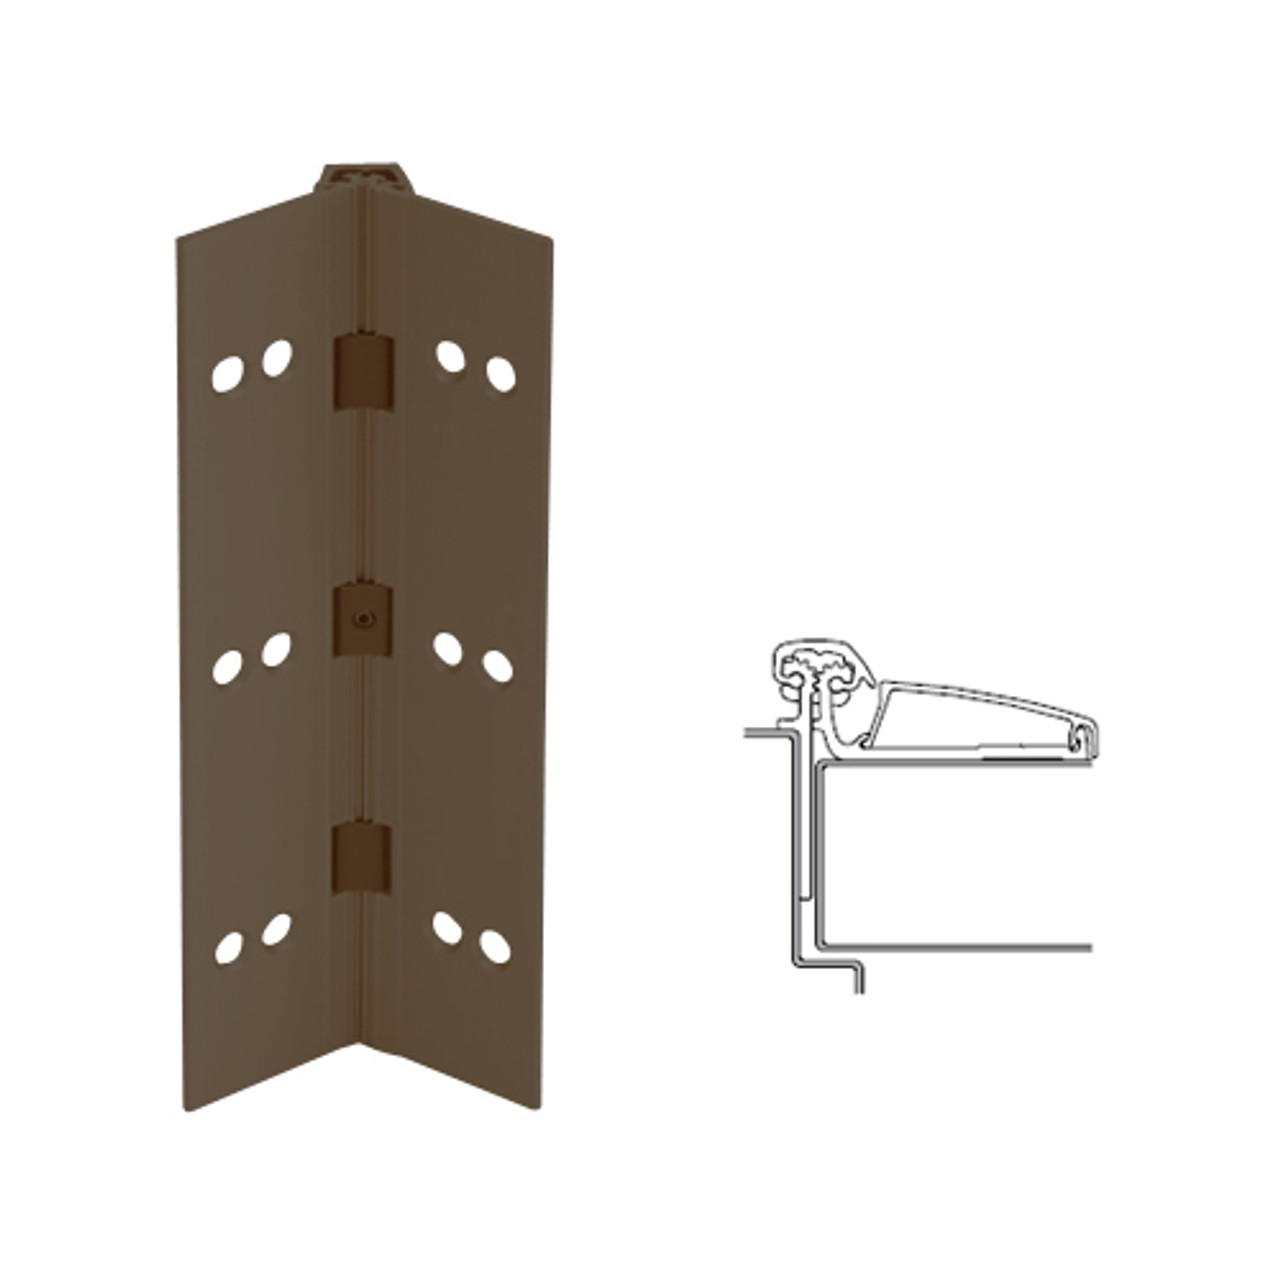 045XY-313AN-120-TEKWD IVES Adjustable Half Surface Continuous Geared Hinges with Wood Screws in Dark Bronze Anodized